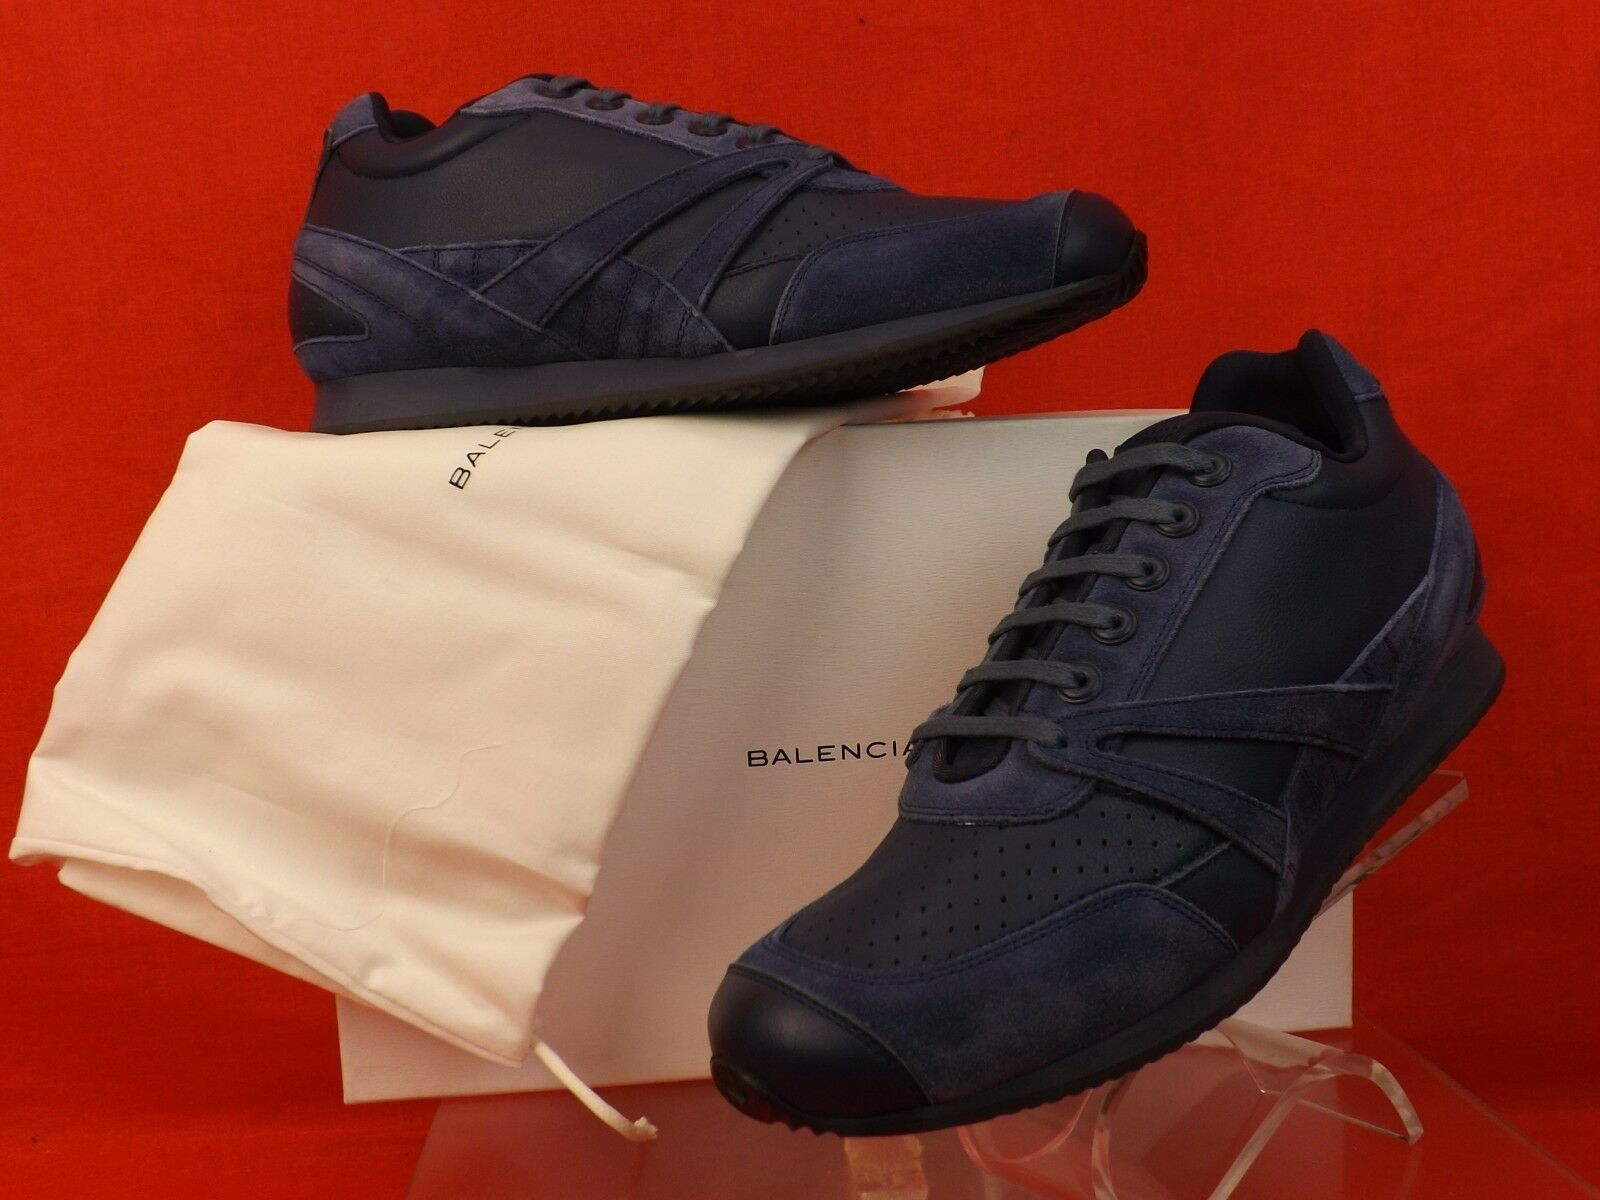 NIB BALENCIAGA NAVY PERFORATED LEATHER SUEDE LOGO SNEAKERS TRAINERS 40  495